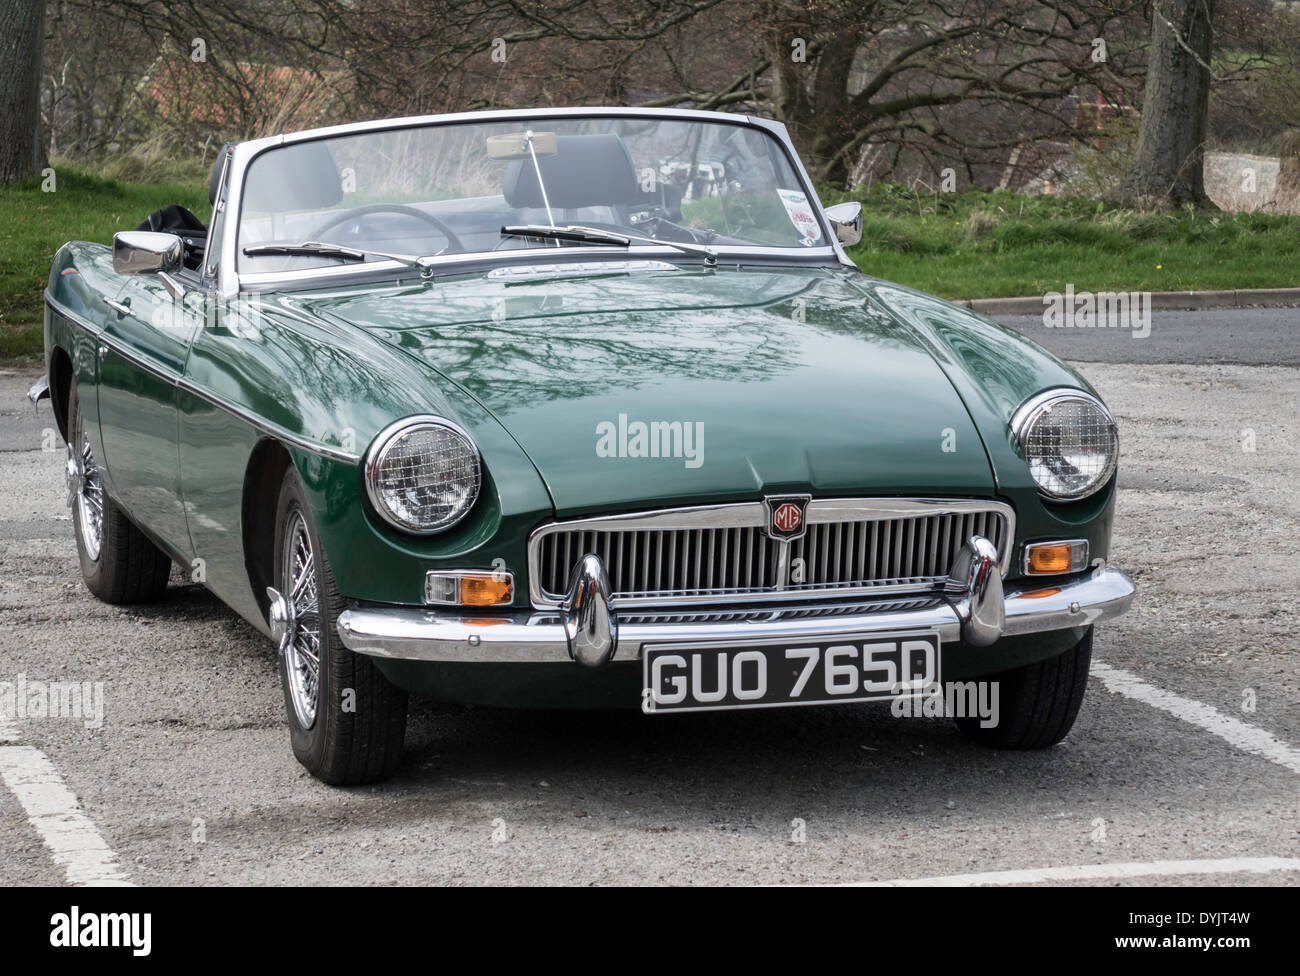 A Classic British Racing Green Mg B Roadster Sports Car In